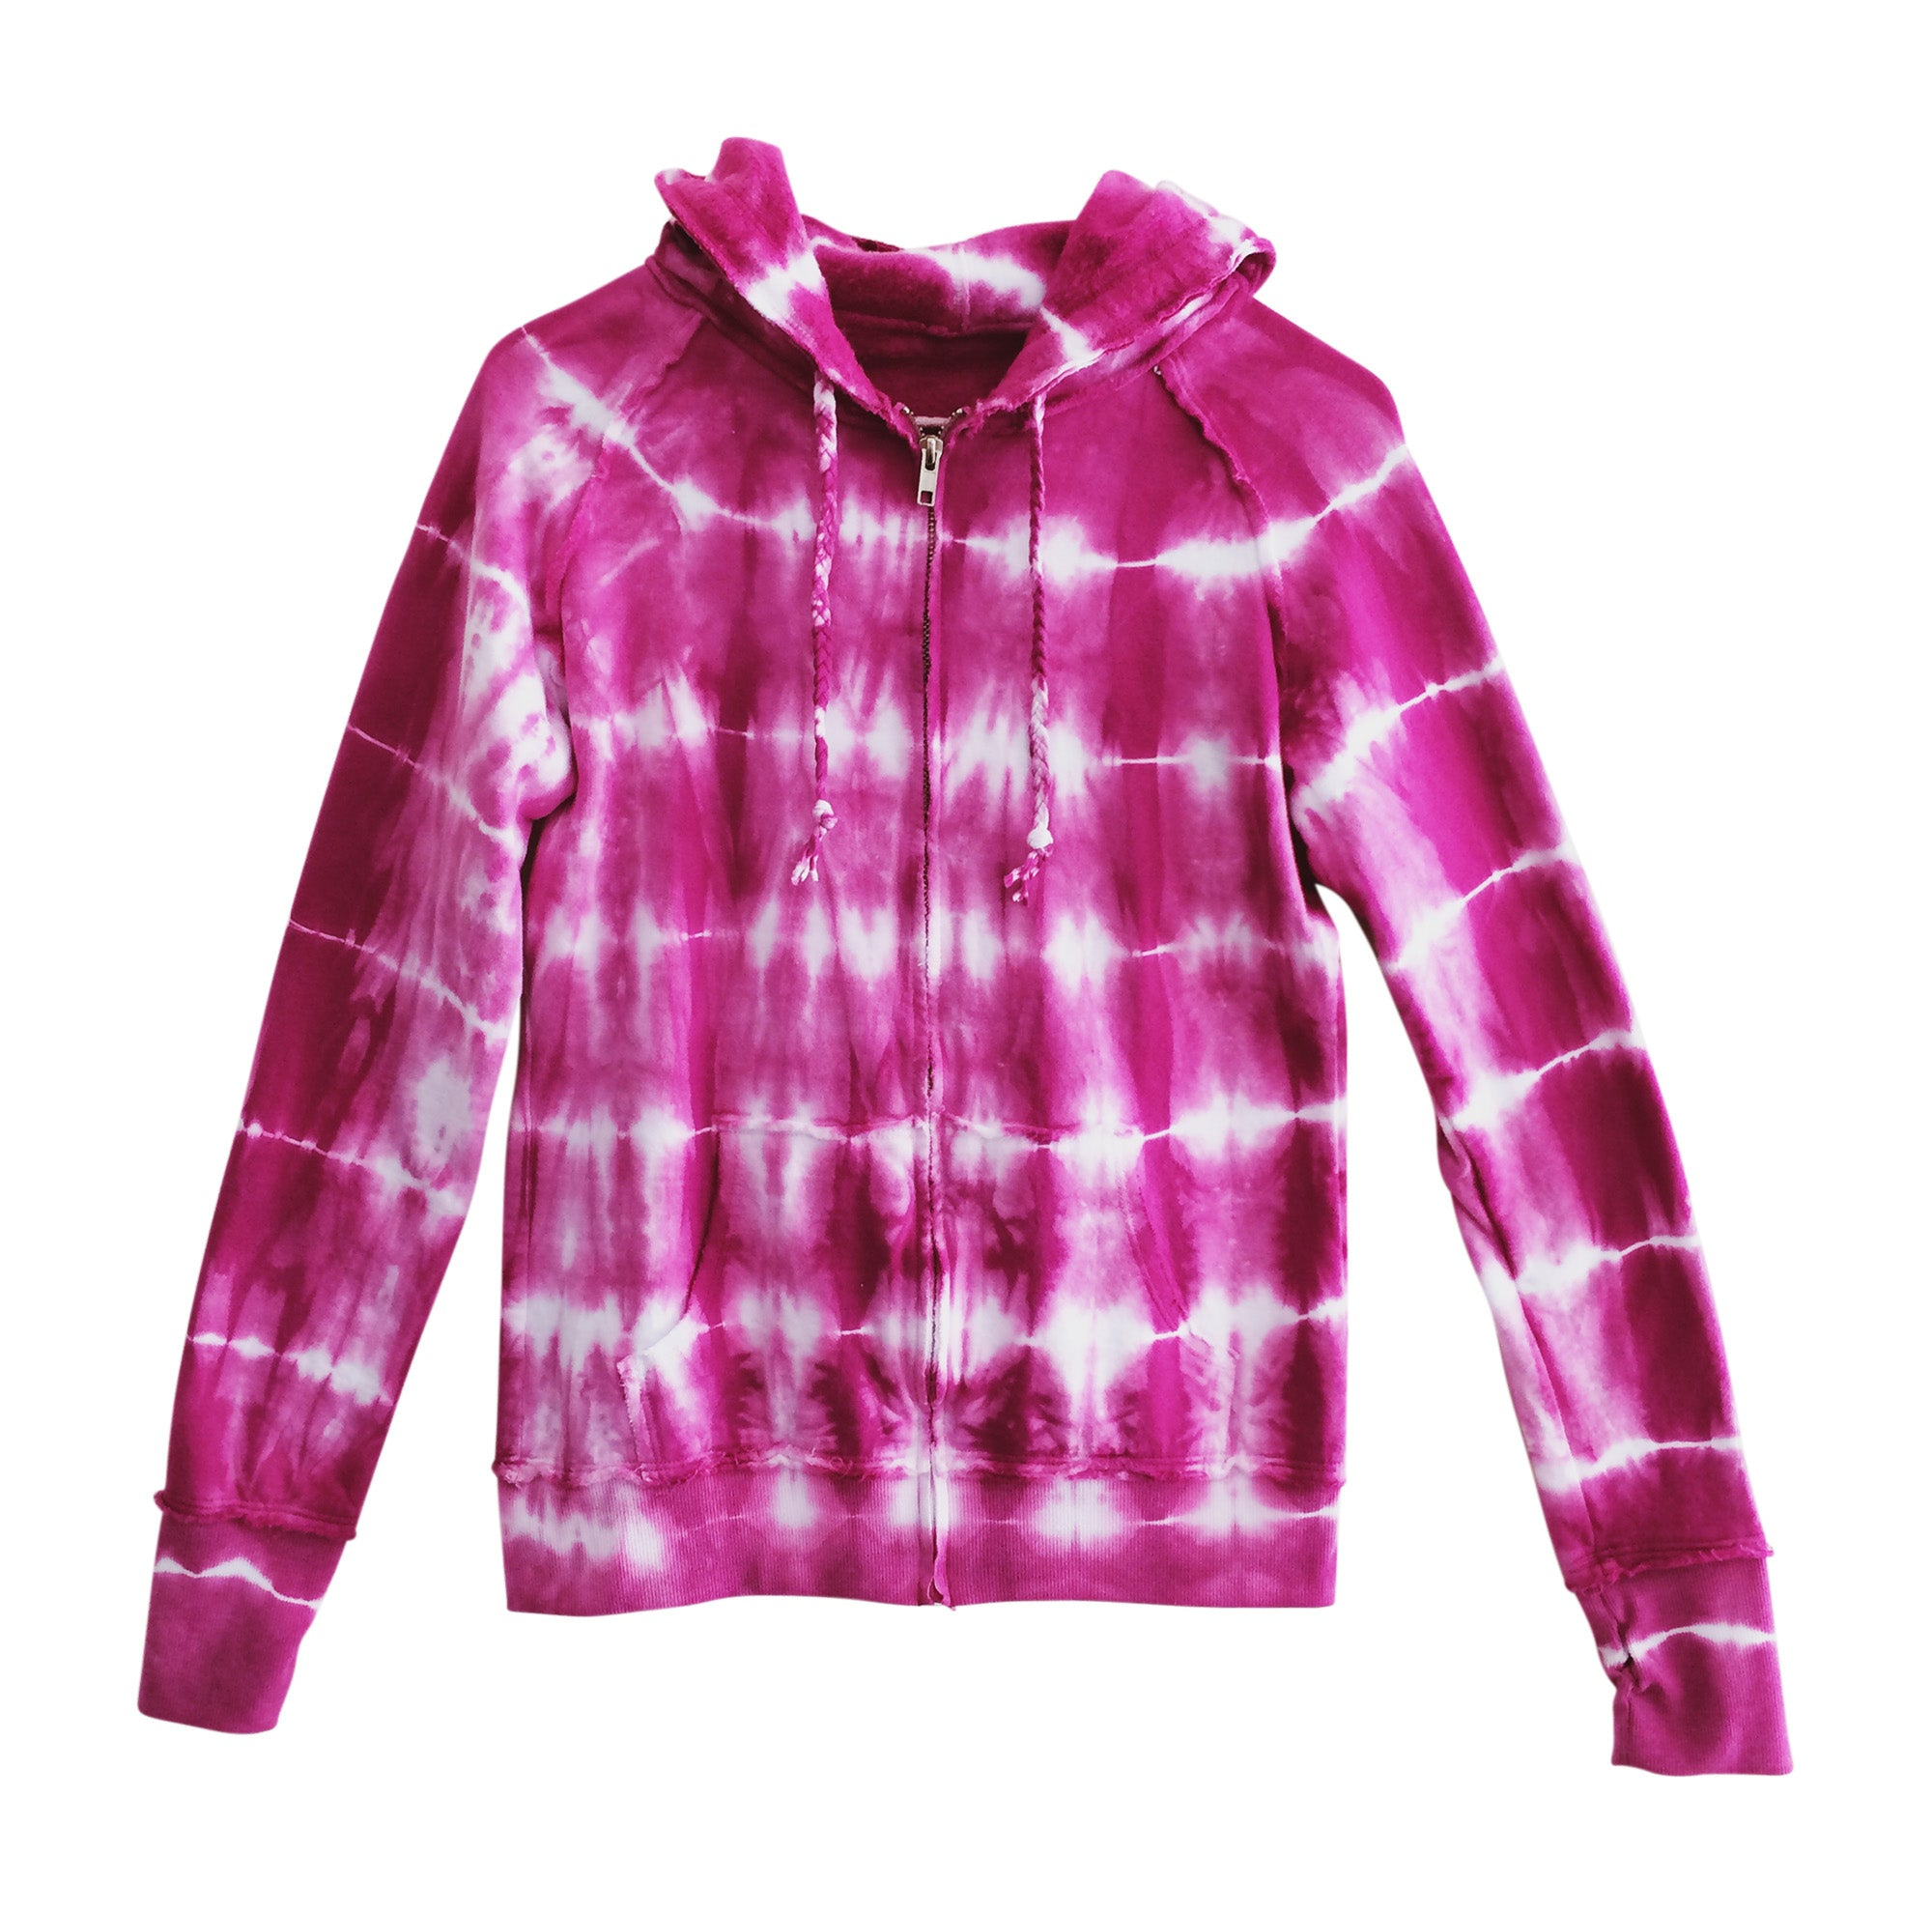 women pink tie dye zip up hooded sweatshirt yoga clothes